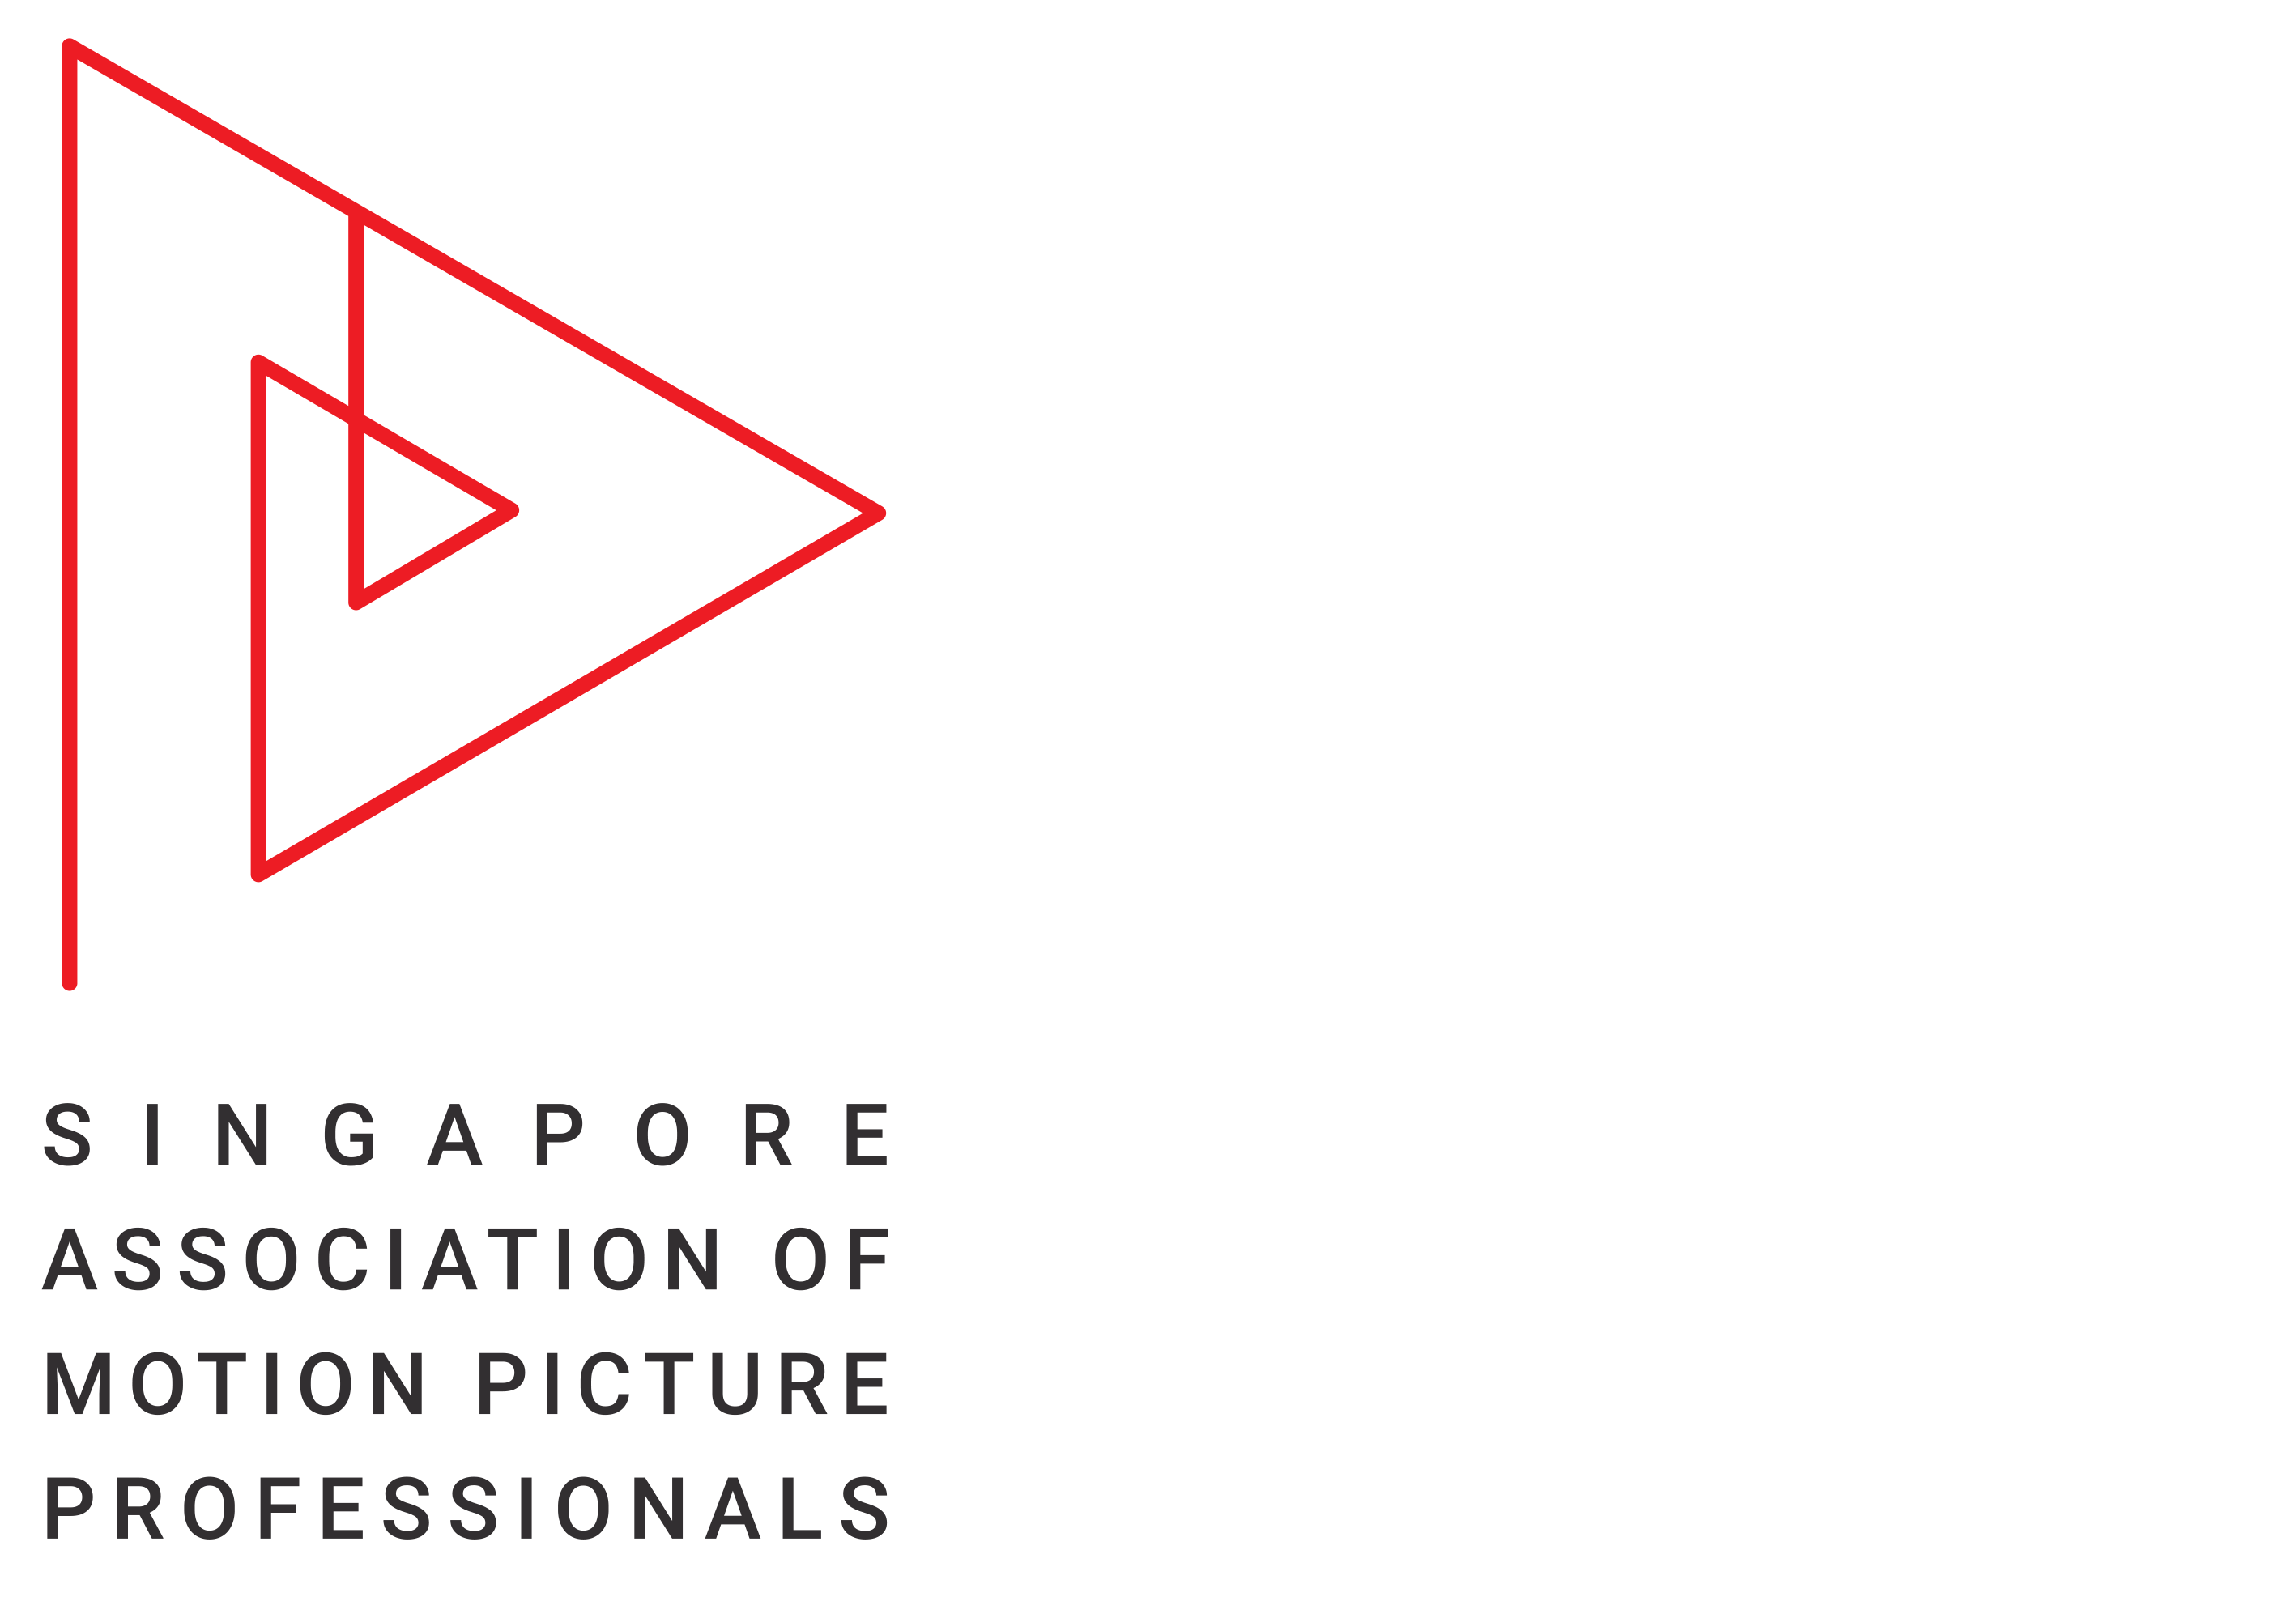 Singapore Association of Motion Picture Professionals